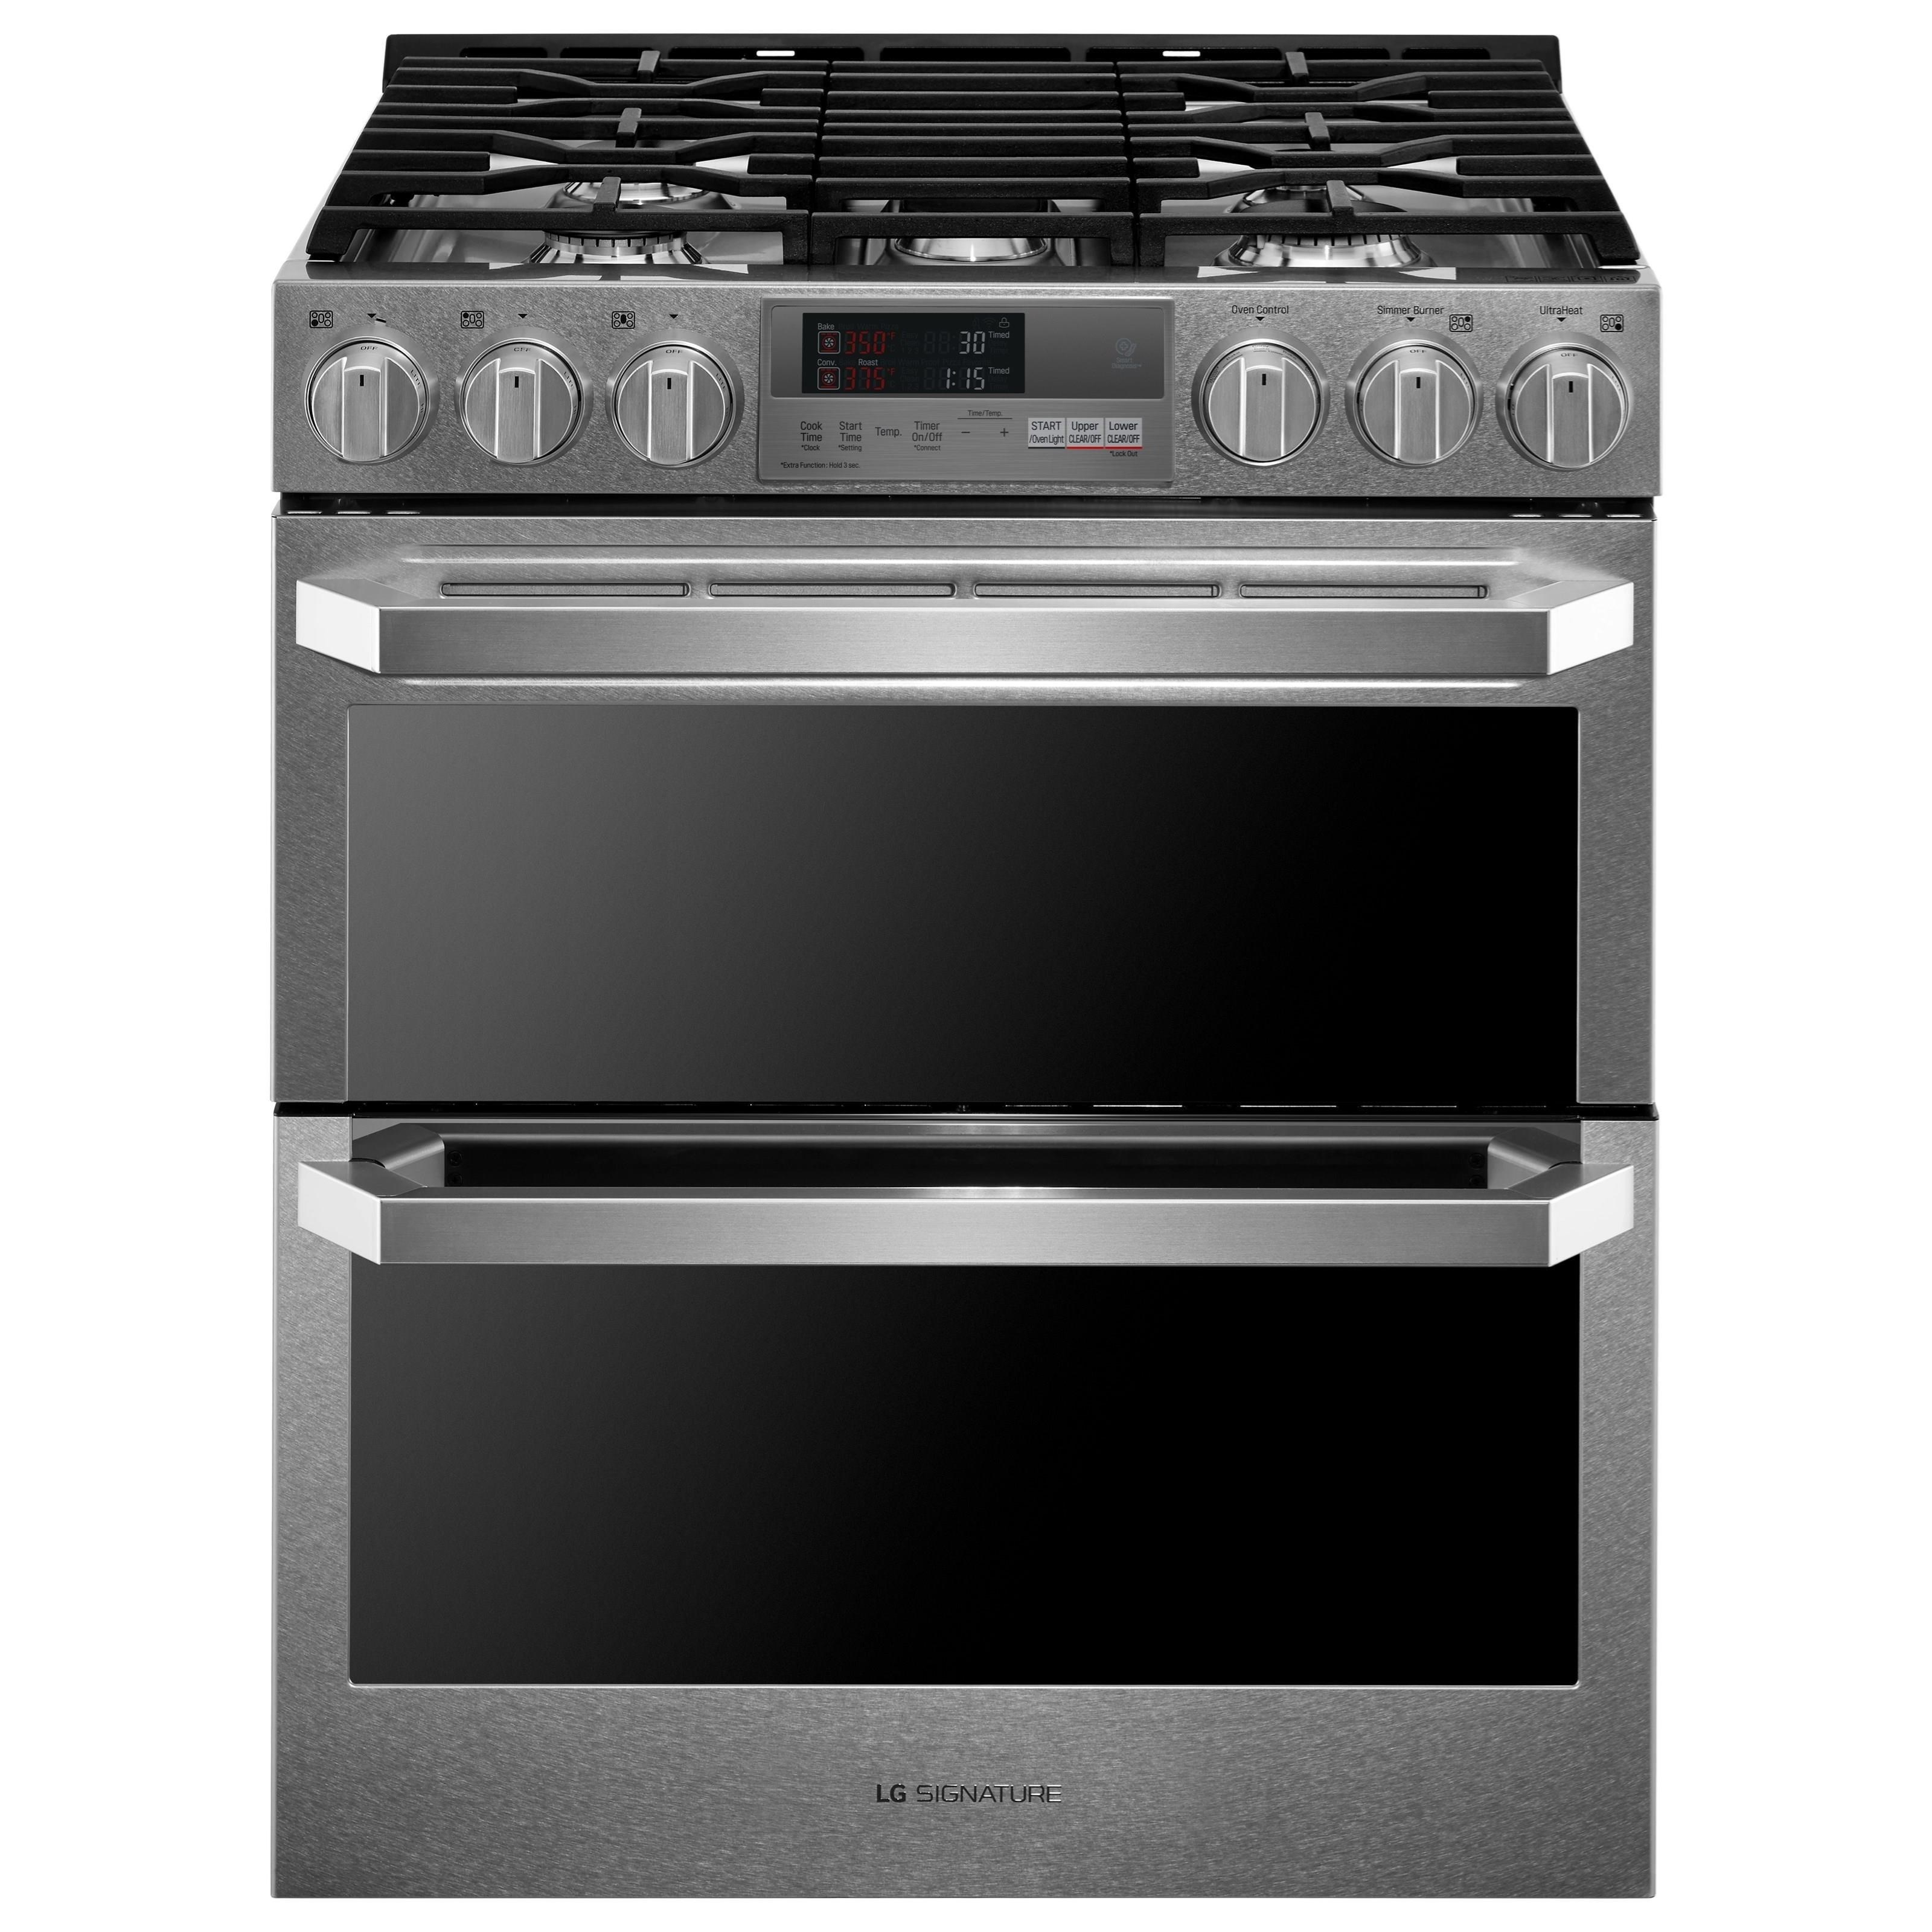 Gas Ranges LG SIGNATURE 7.3 Cu.Ft. Dual Fuel Range by LG Appliances at Furniture and ApplianceMart